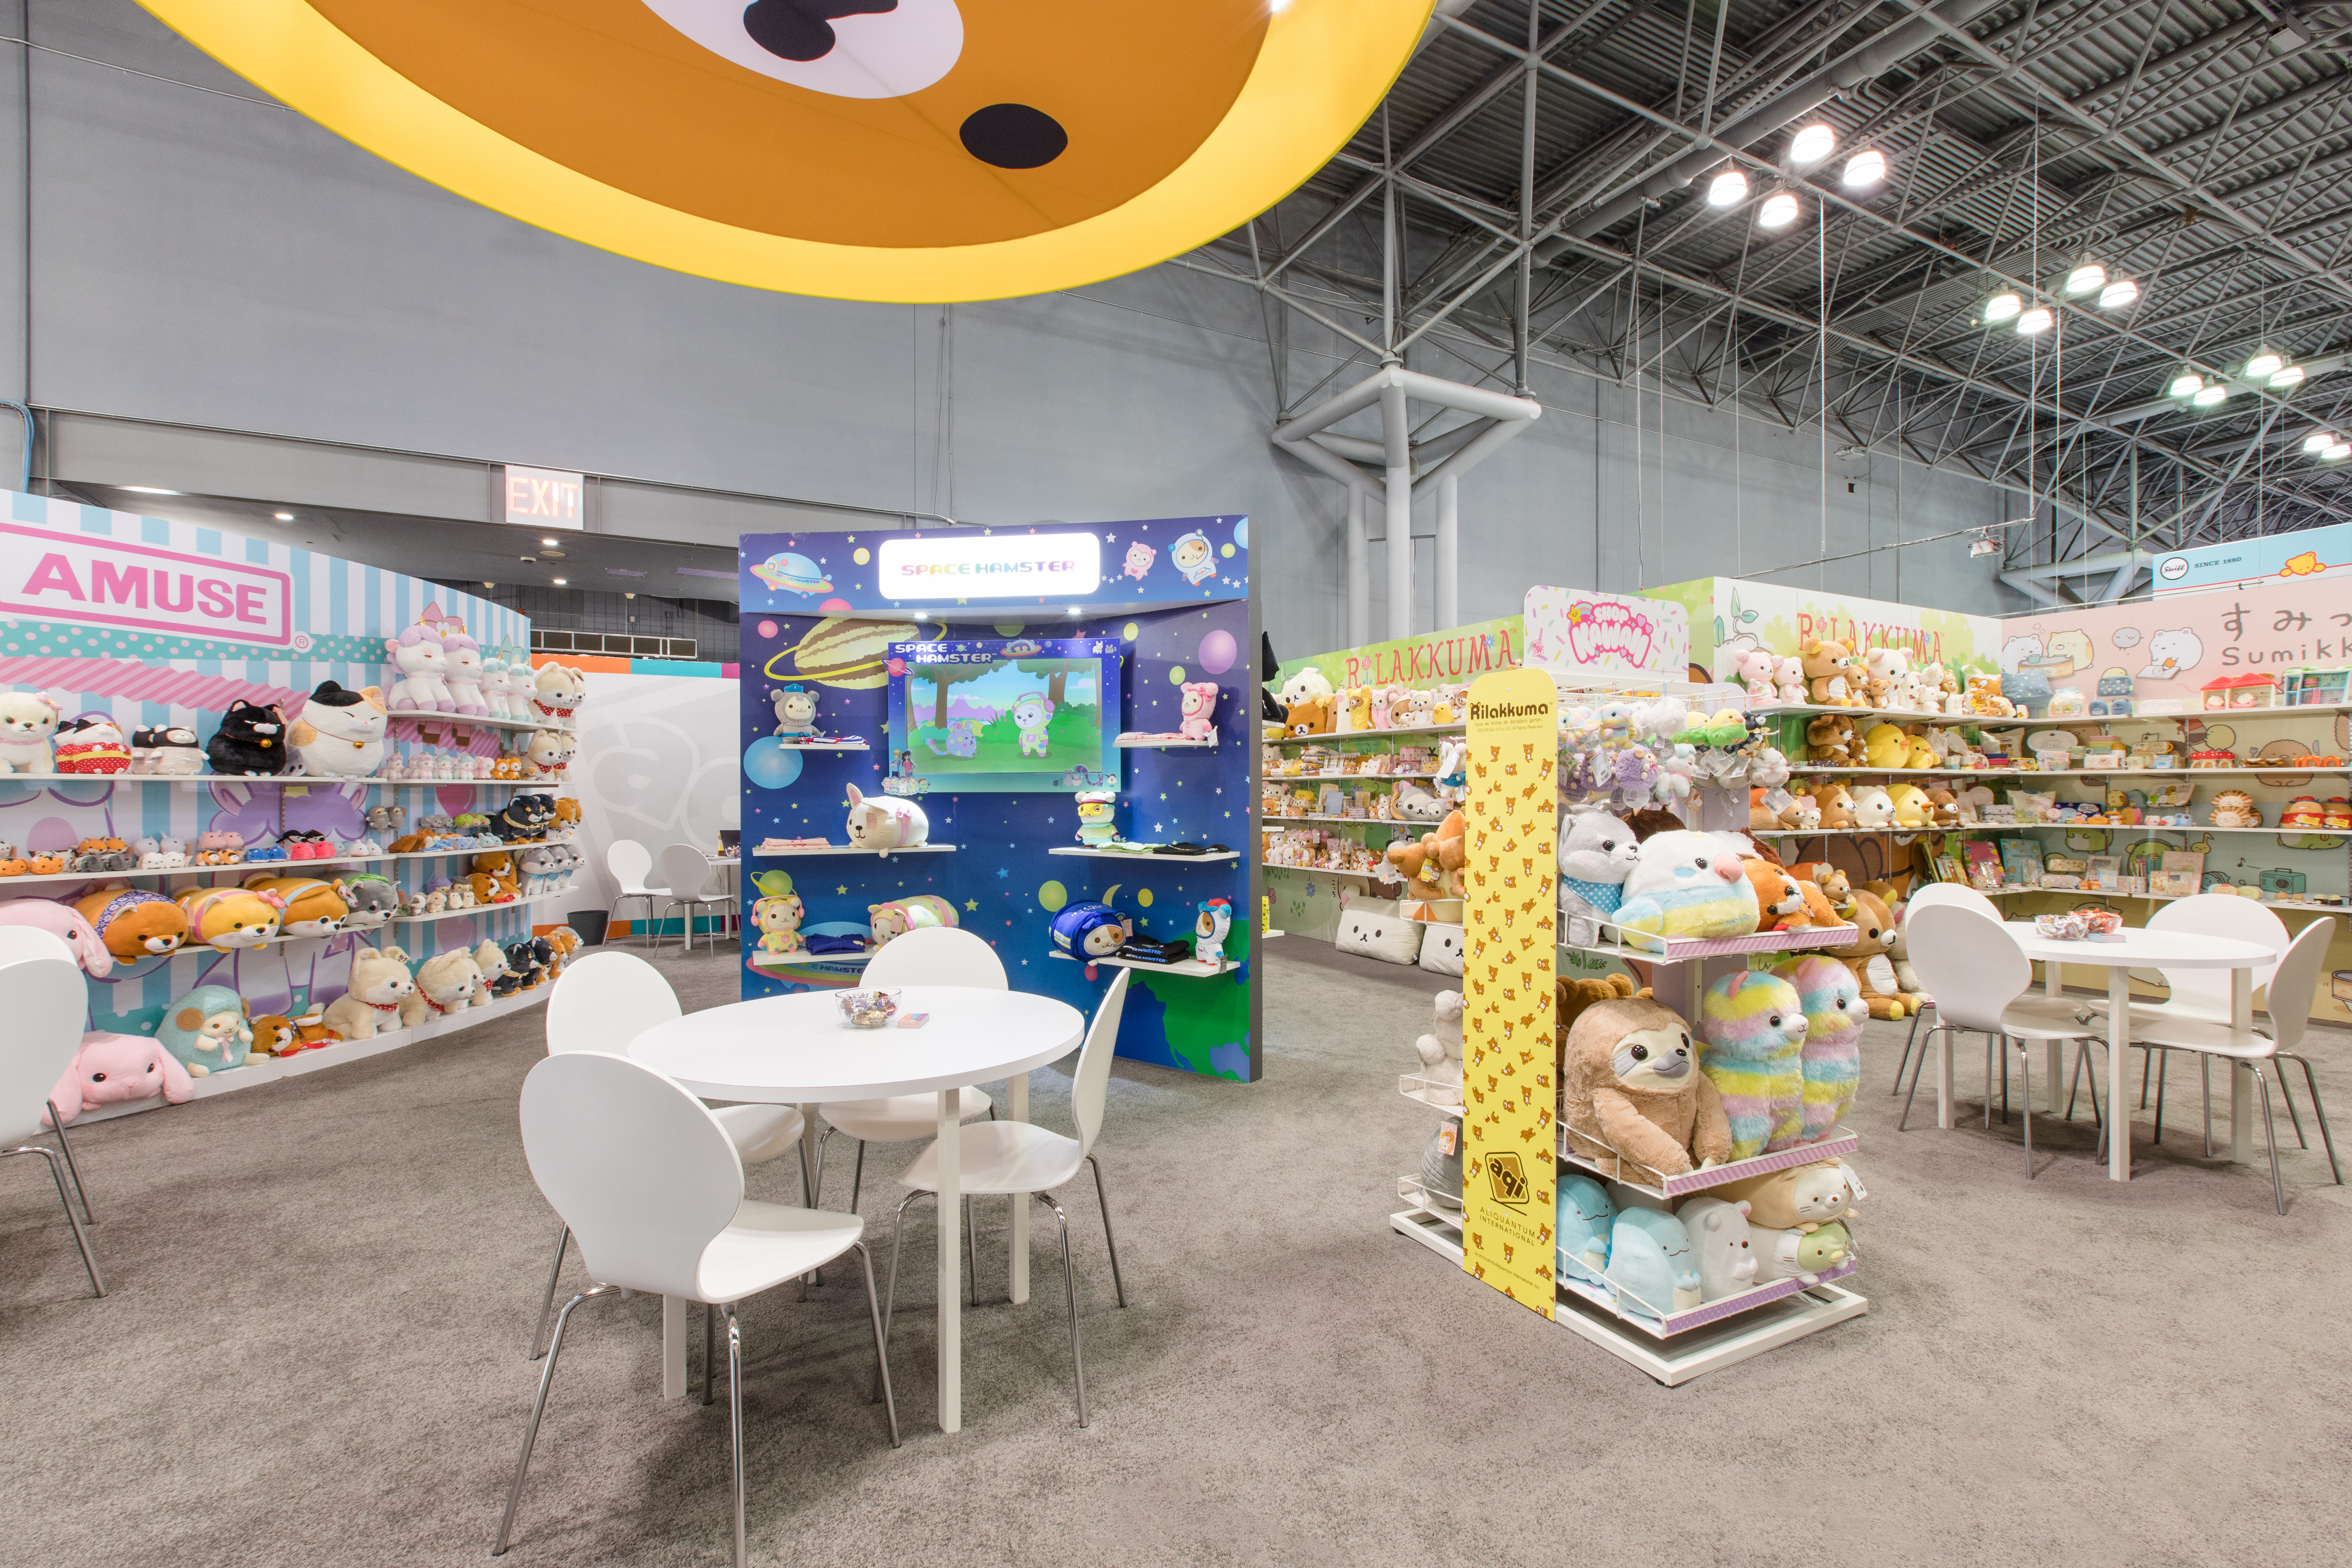 Wide view of AQI area at NYTF 2019. Areas shown include Amuse Rilakkuma, Space Hamster, Sumikkogurashi.